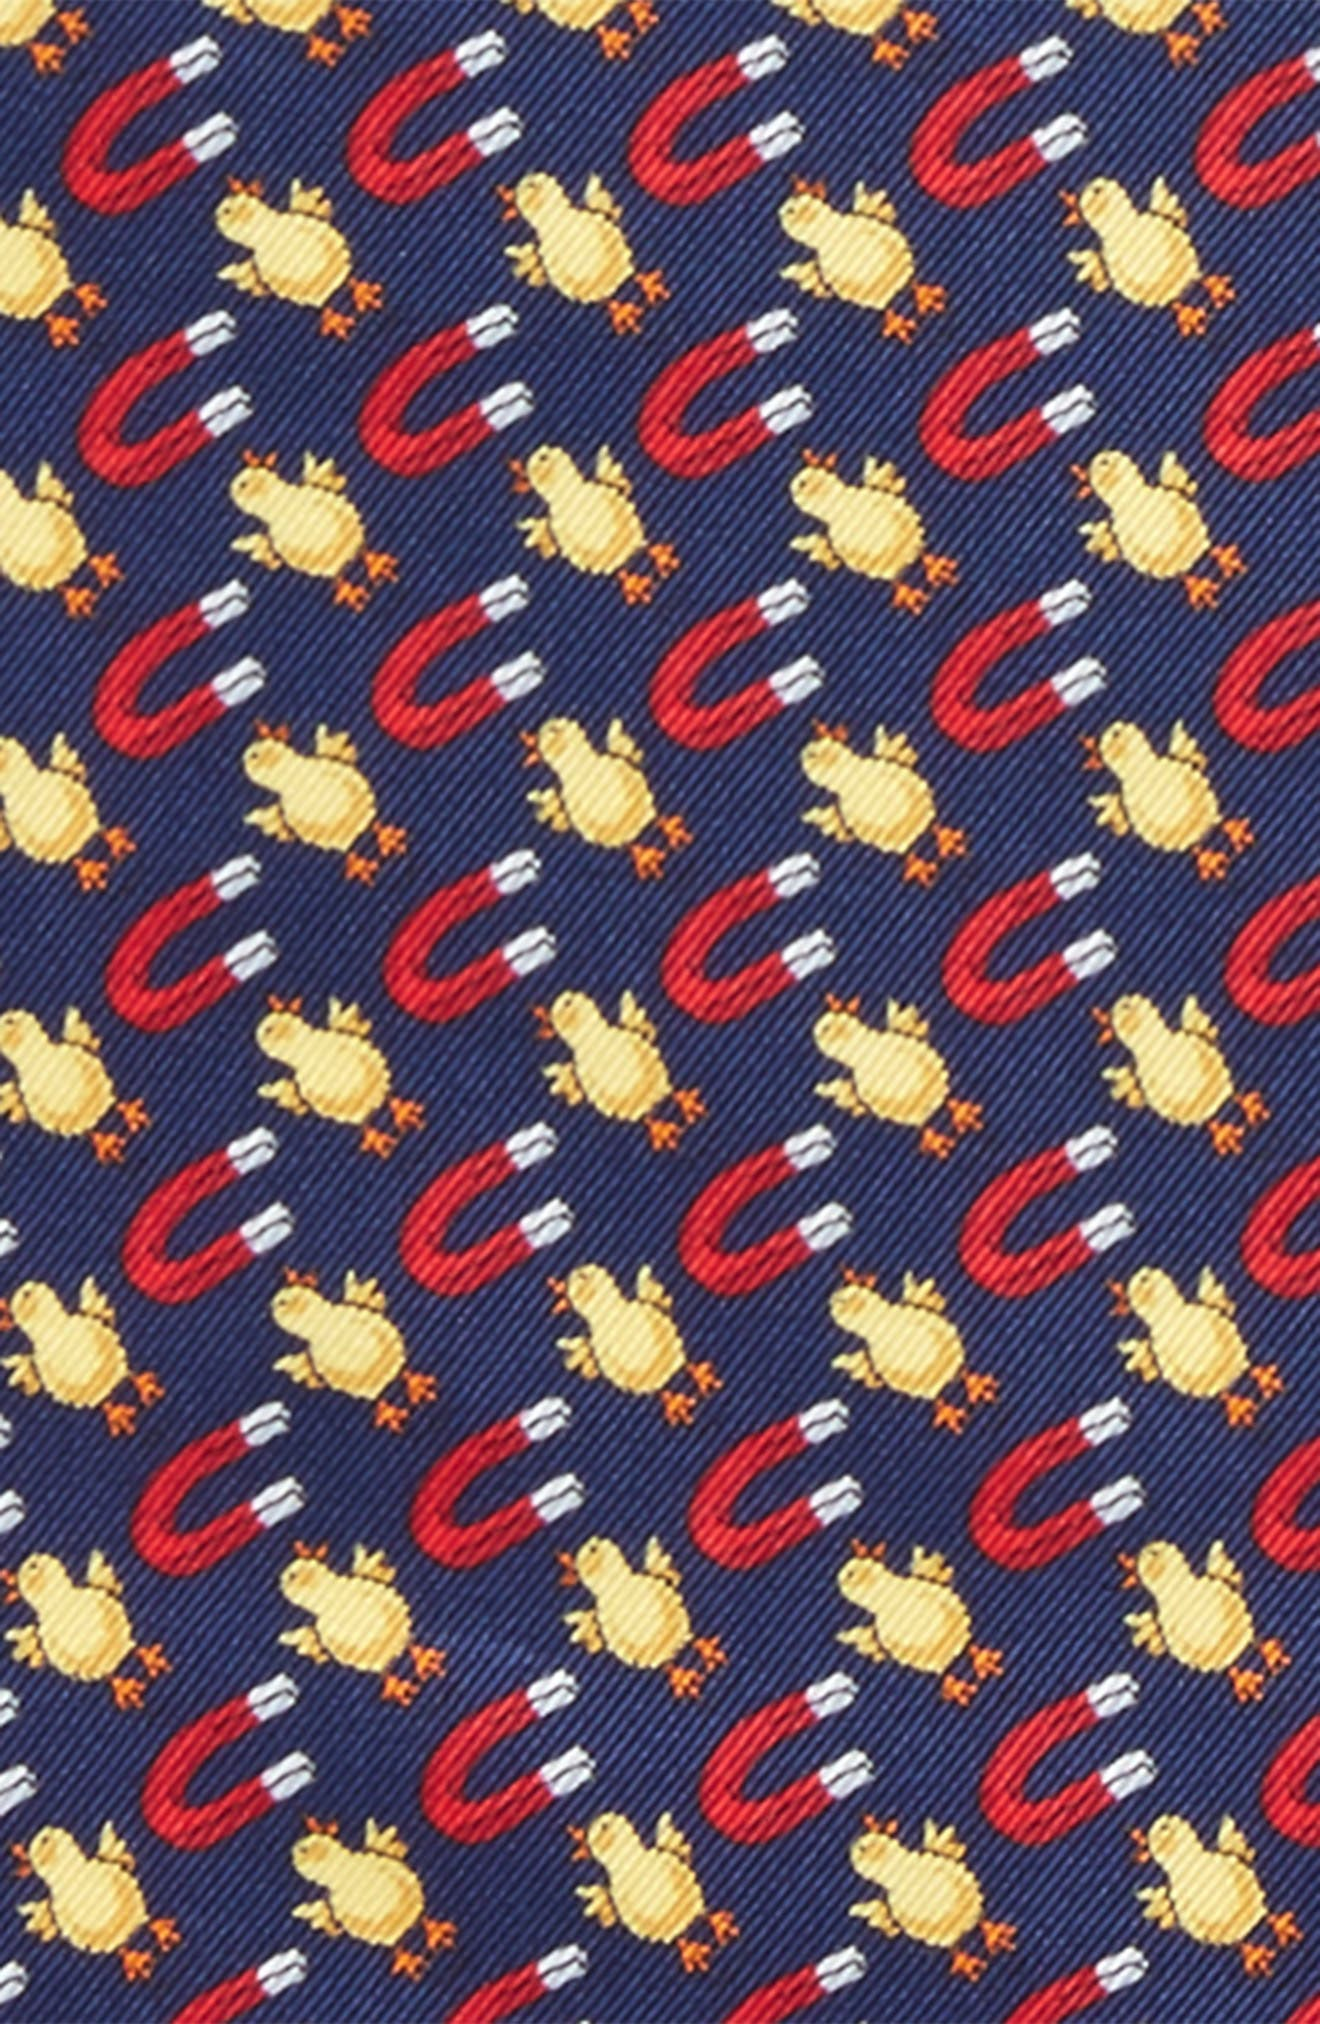 Chick Magnet Silk Pocket Square,                             Alternate thumbnail 3, color,                             NAVY